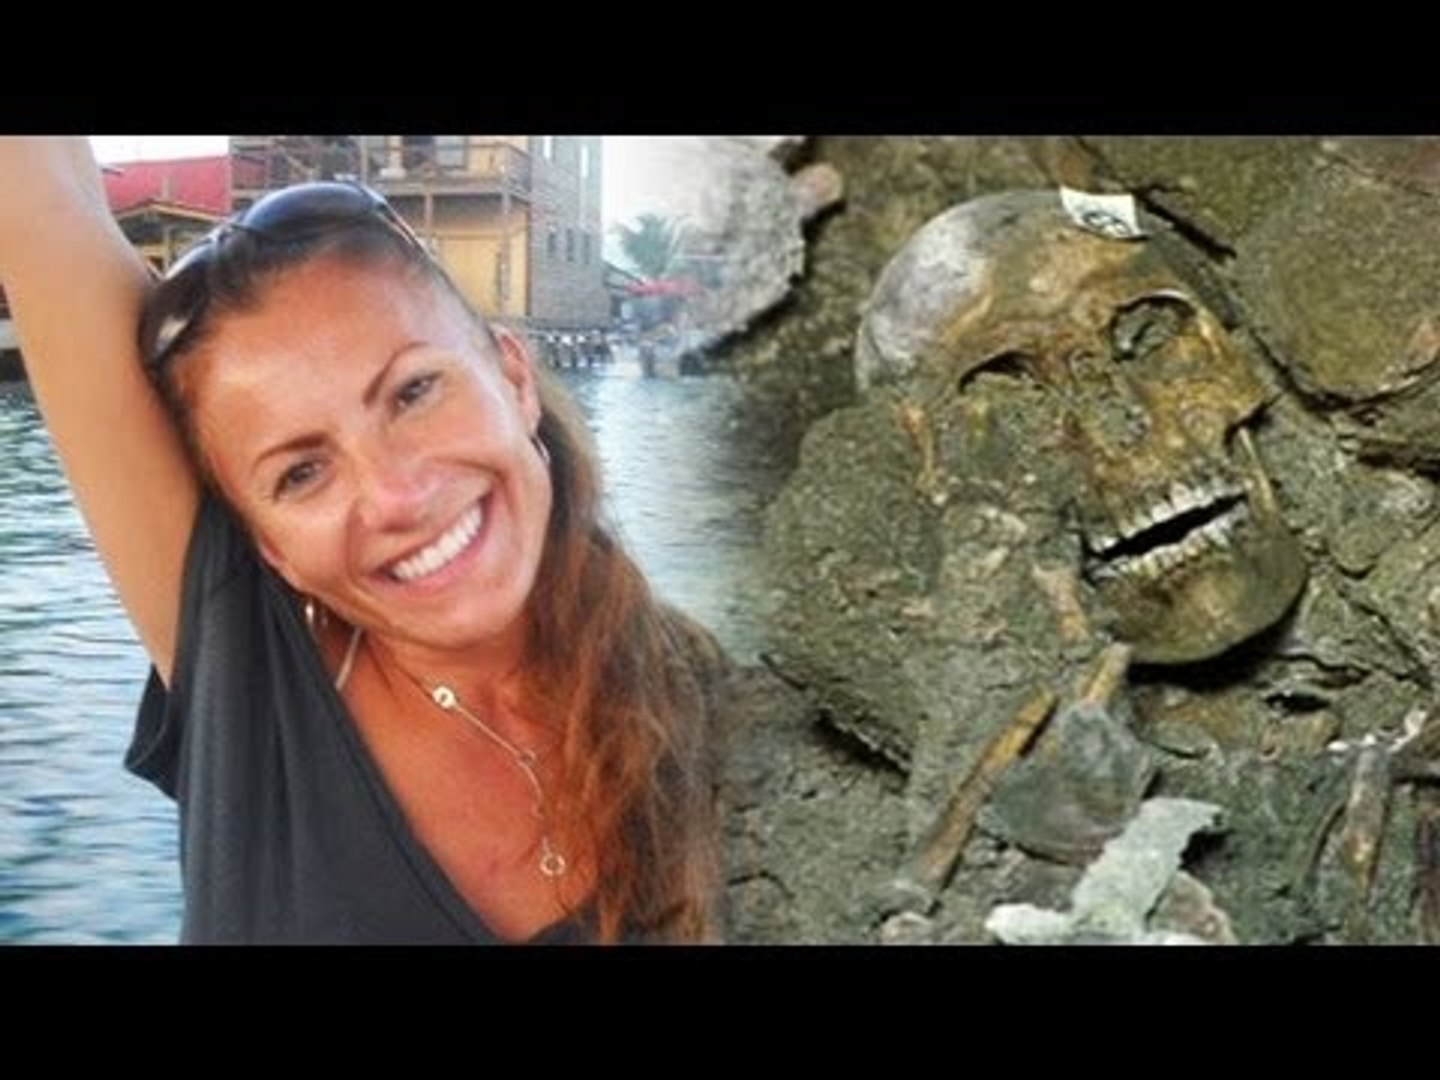 Skeletal remains found in Panama are US citizen Yvonne Baldelli